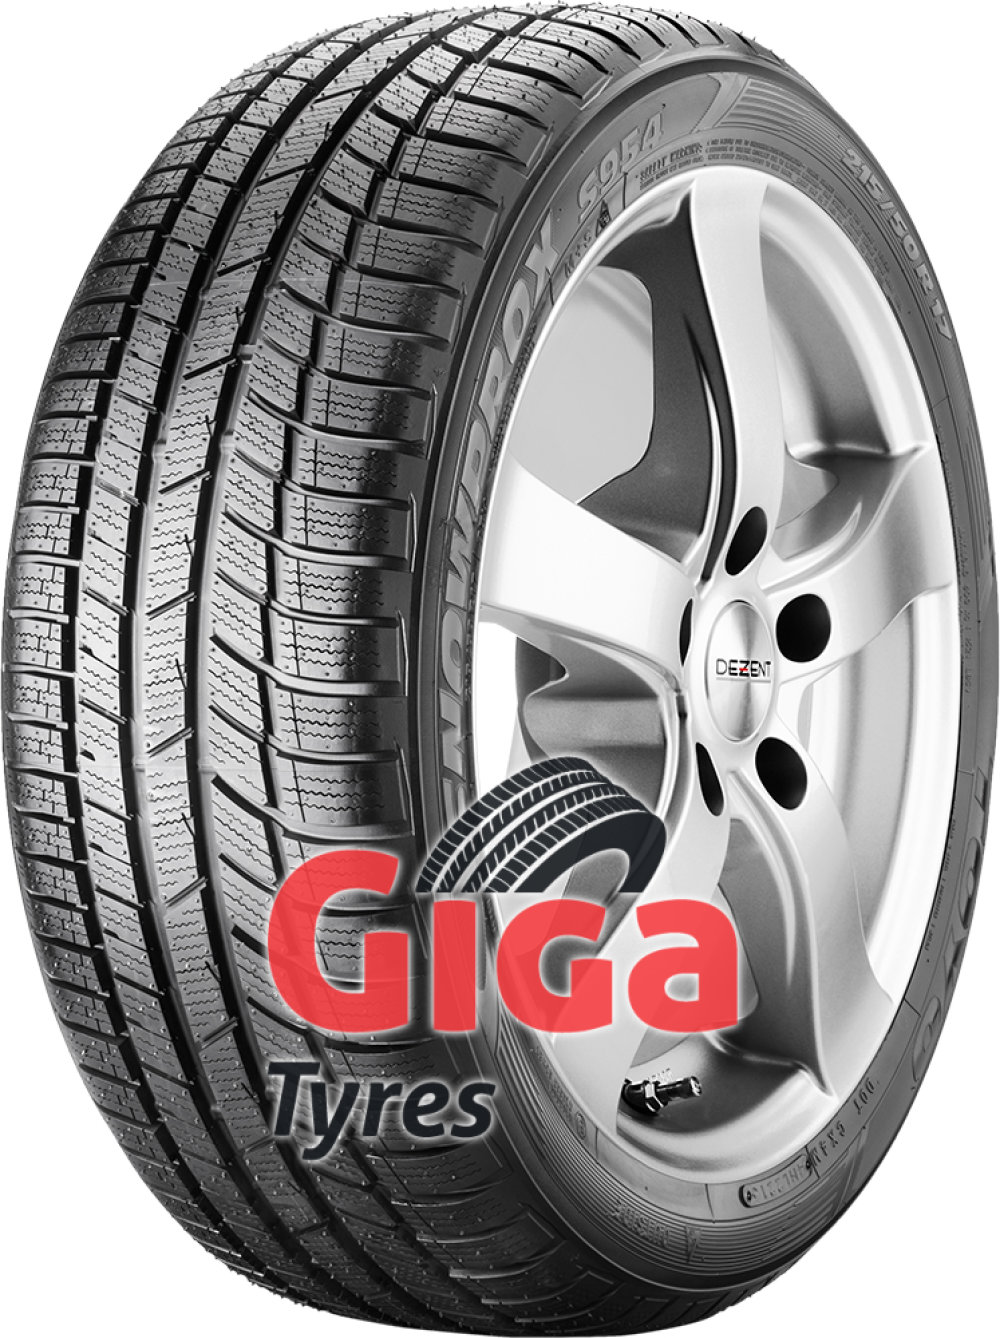 Toyo Snowprox S 954 ( 225/45 R18 95V XL , with rim protection ridge (FSL) )